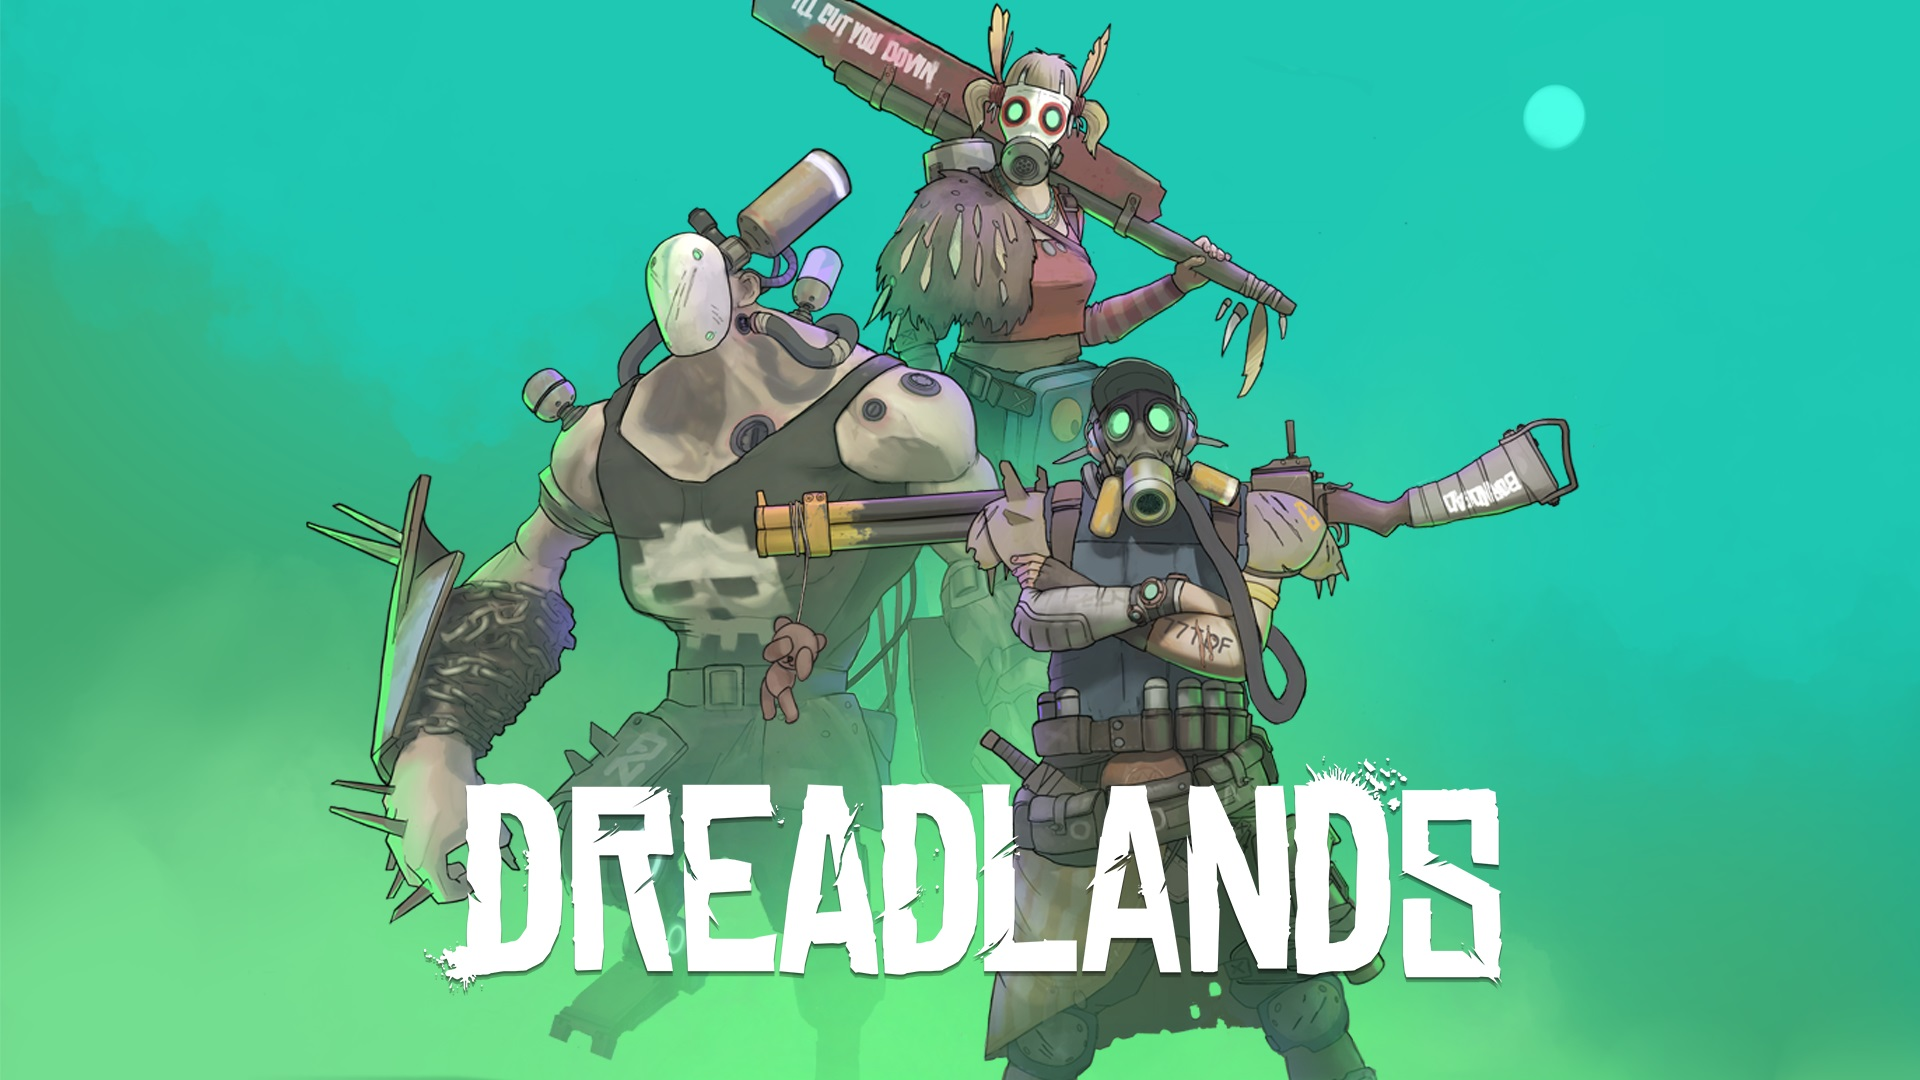 Giveaway: Play Dreadlands early and free with one of our beta keys